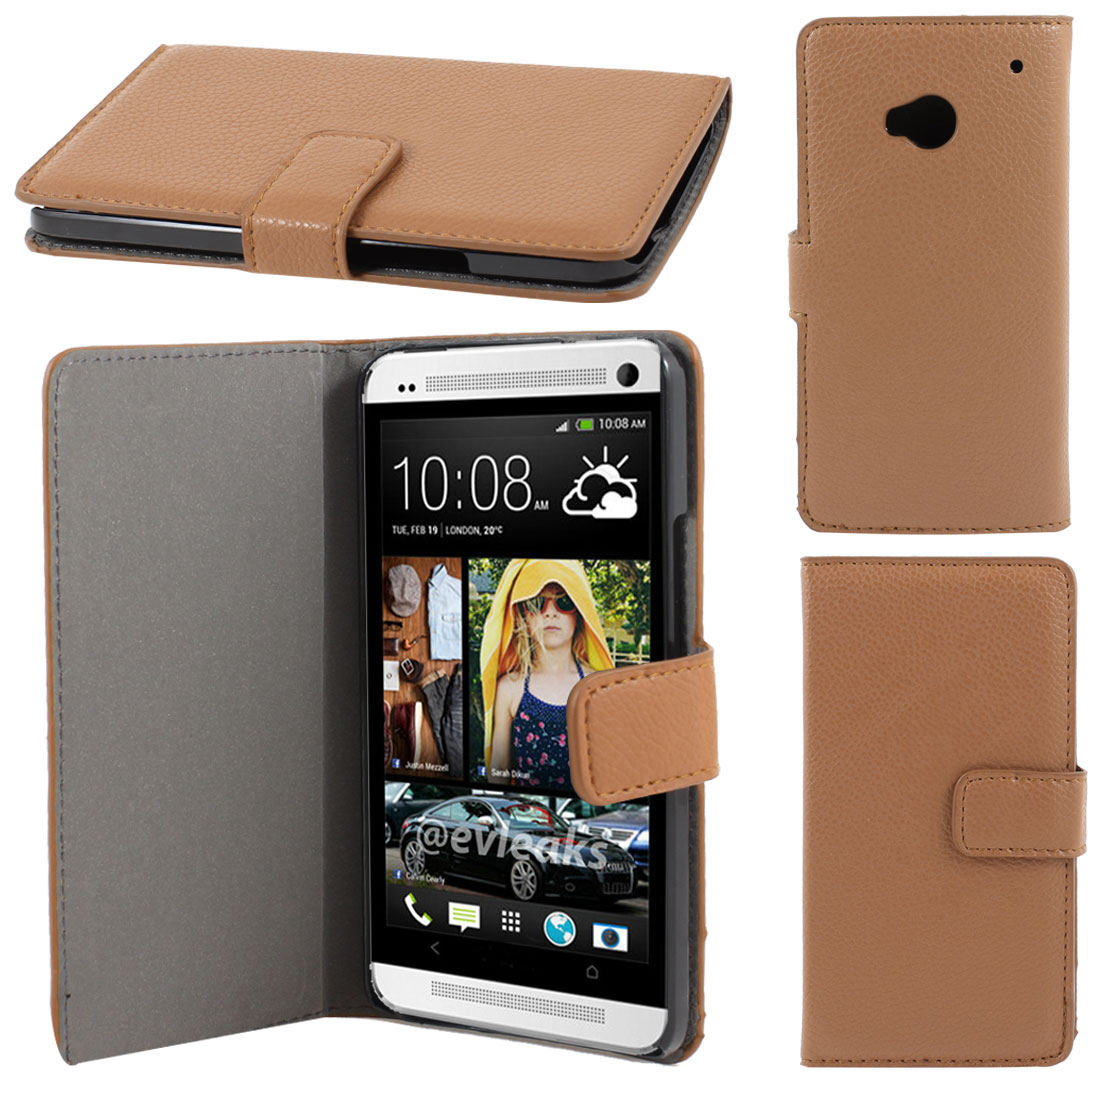 Brown Faux Leather Litchi Print Magnetic Flip Case Cover Pouch for HTC one M7